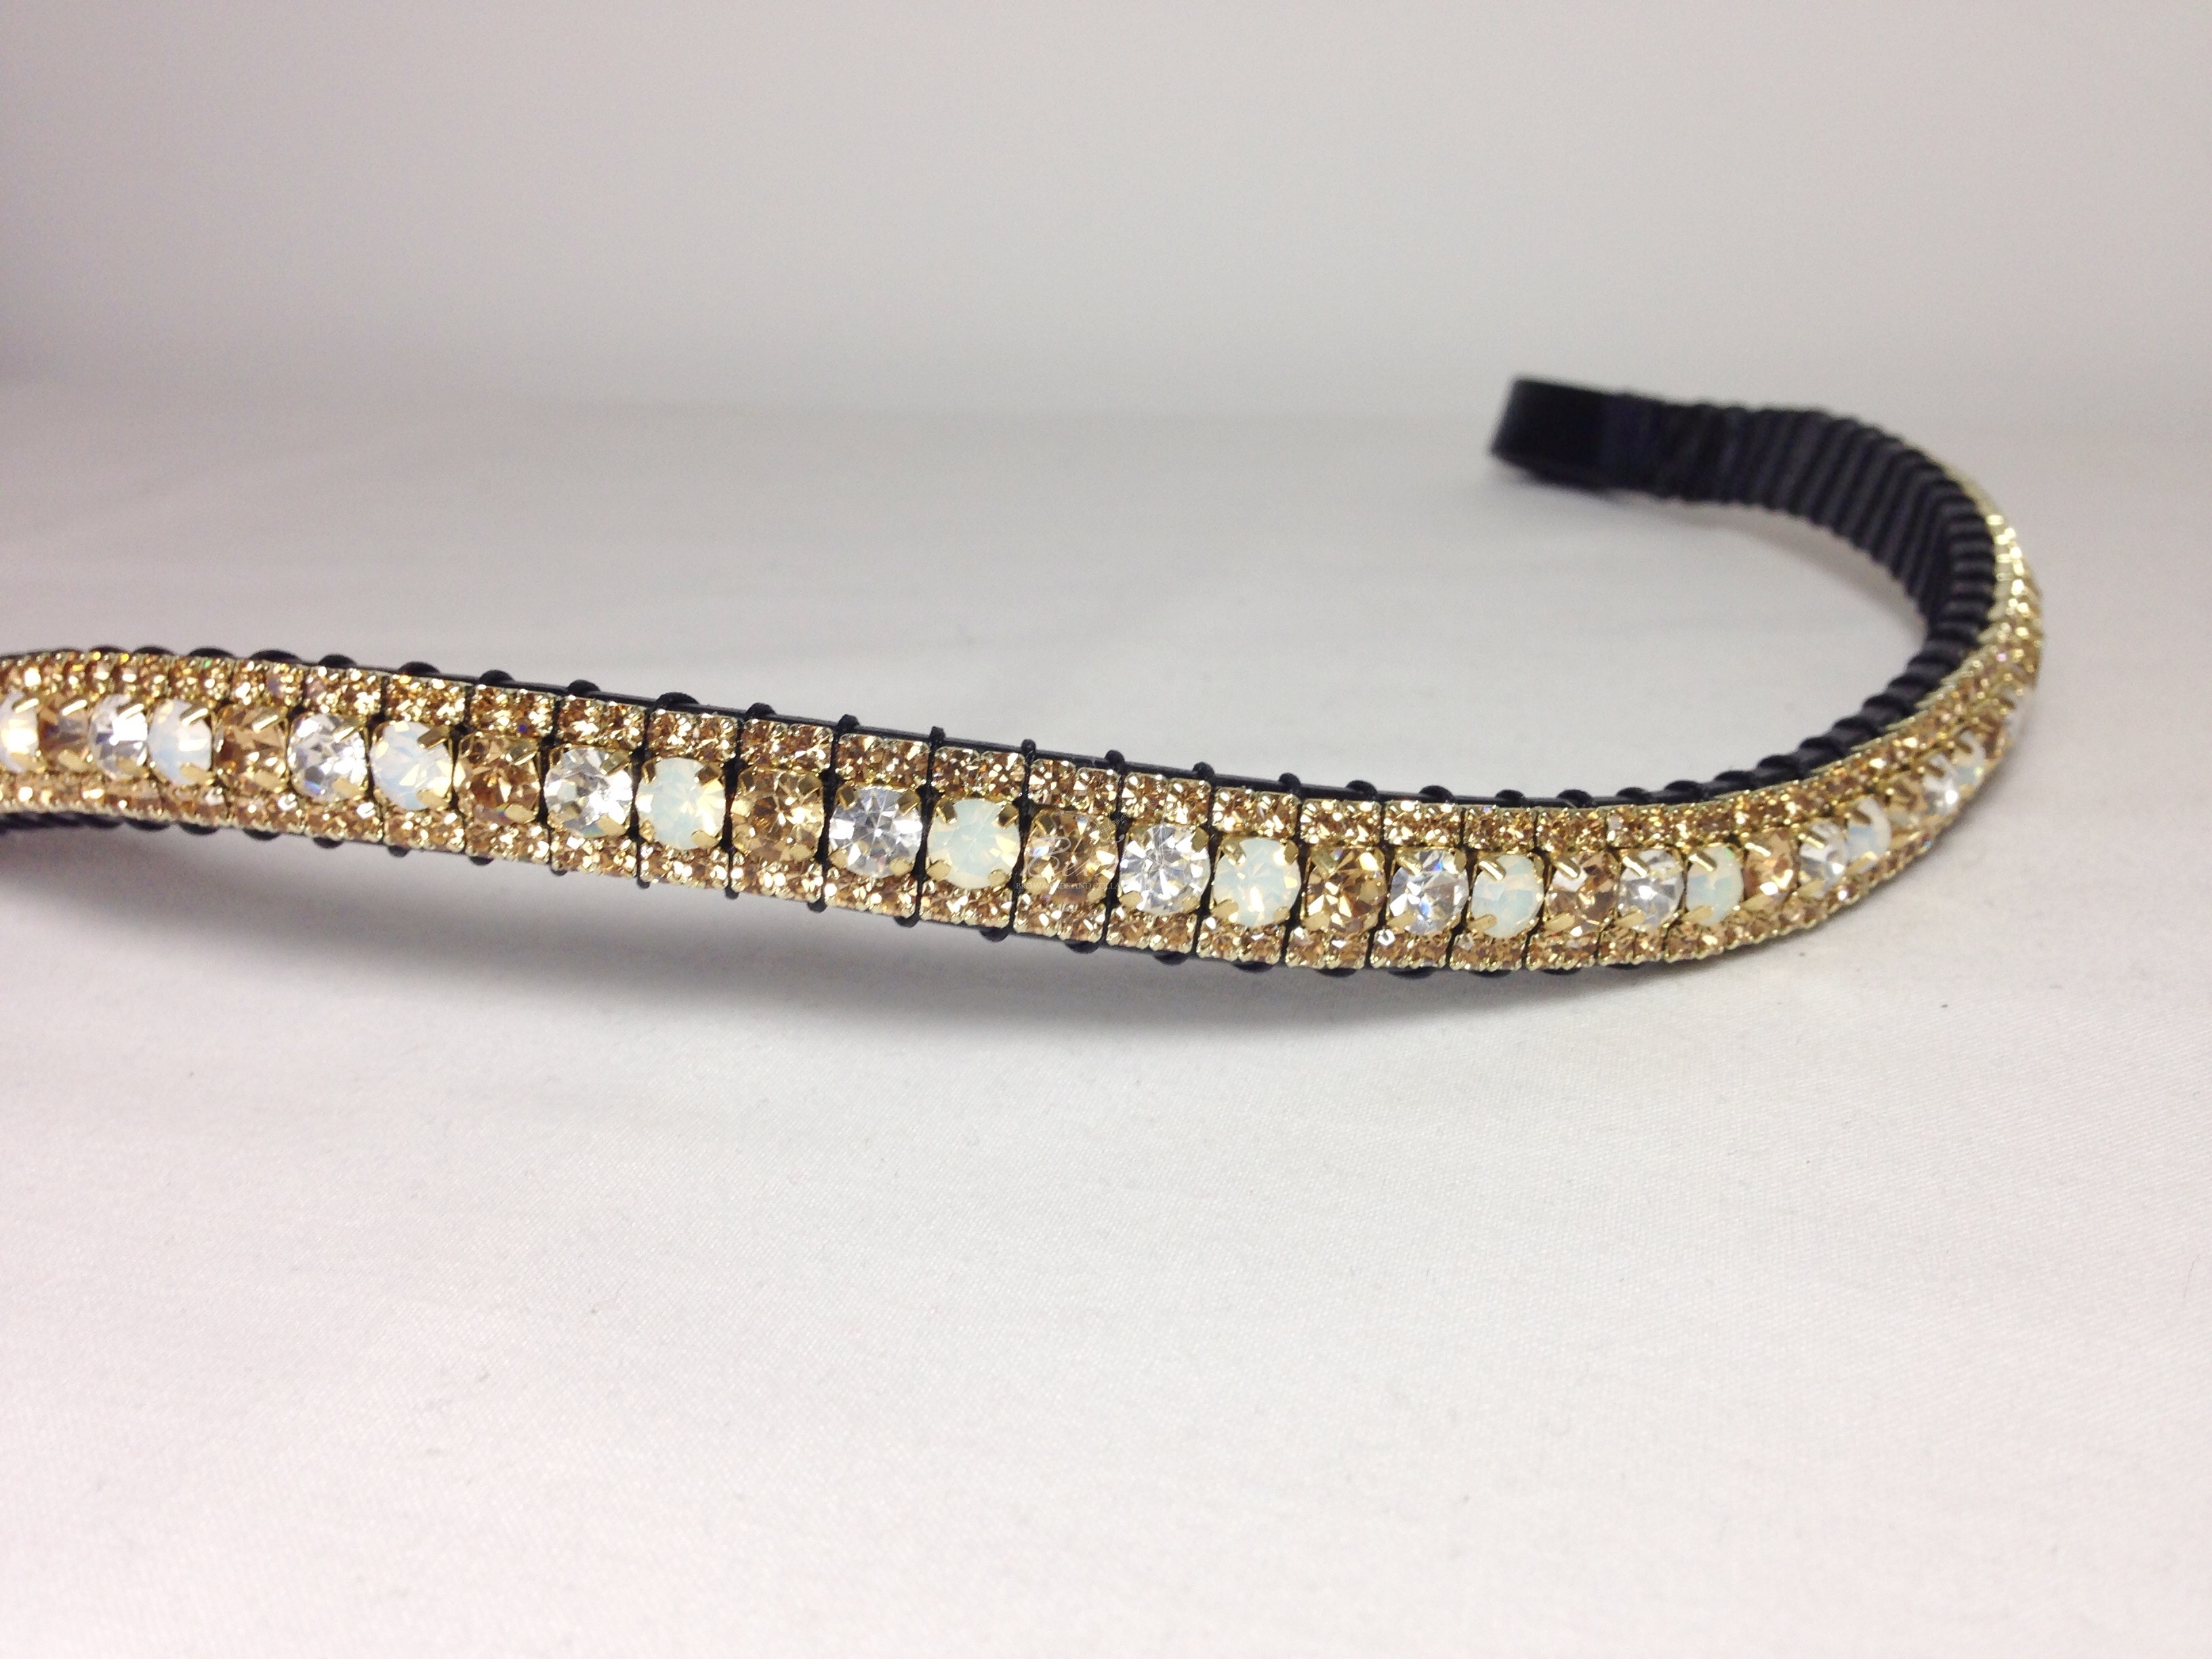 "Curved 1/2"" Preciosa Crystal Browband: Opal/Pearl/Light Colorado Topaz 6mm, and Light Colorado Topaz 3mm."